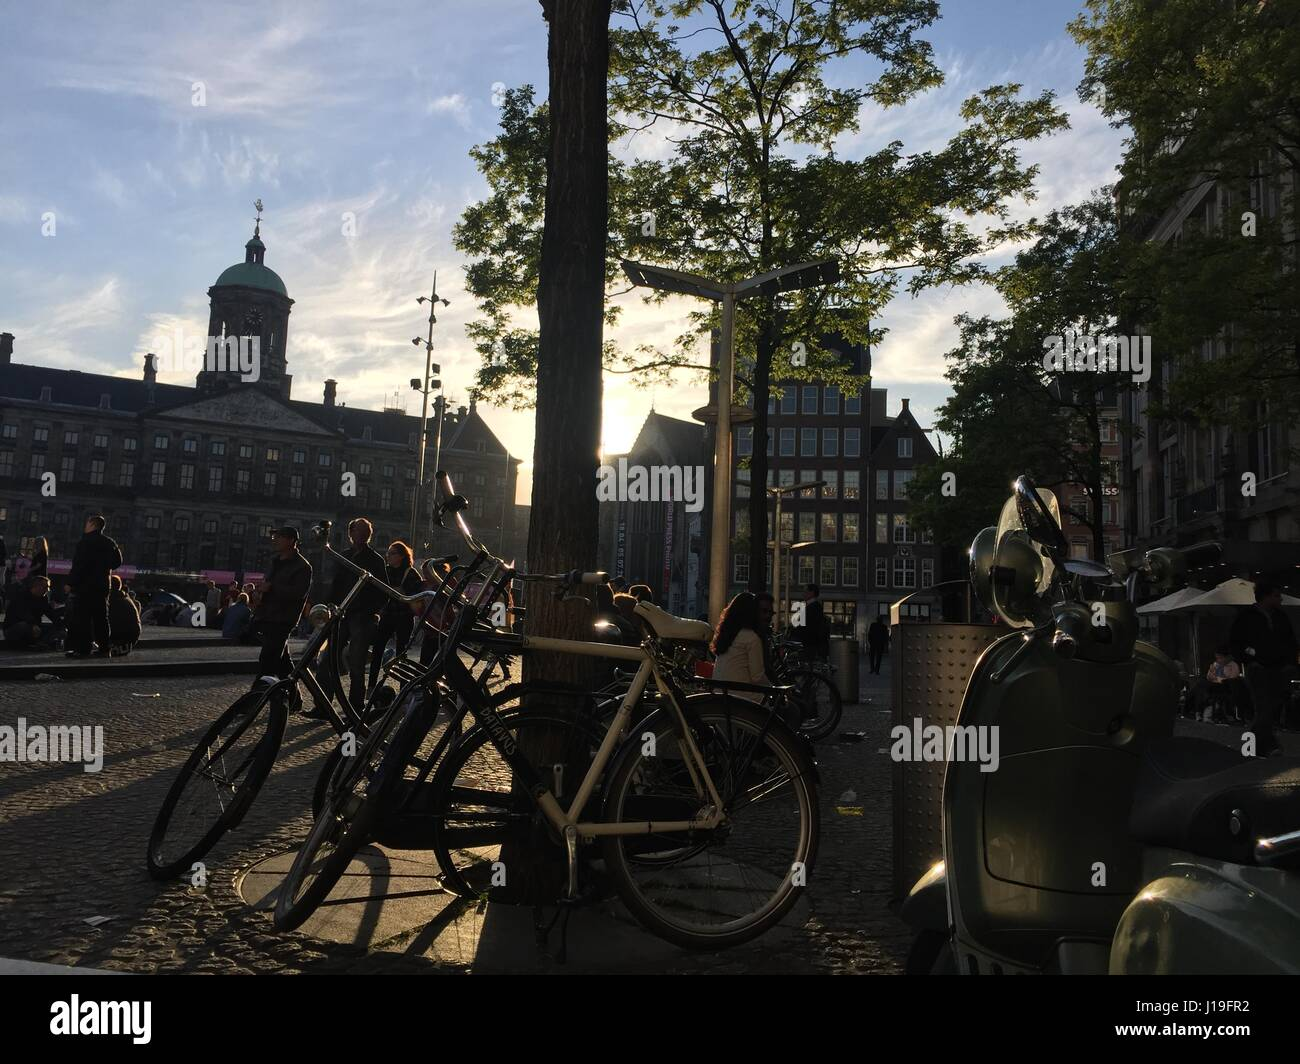 Evenings in Amsterdam - Stock Image